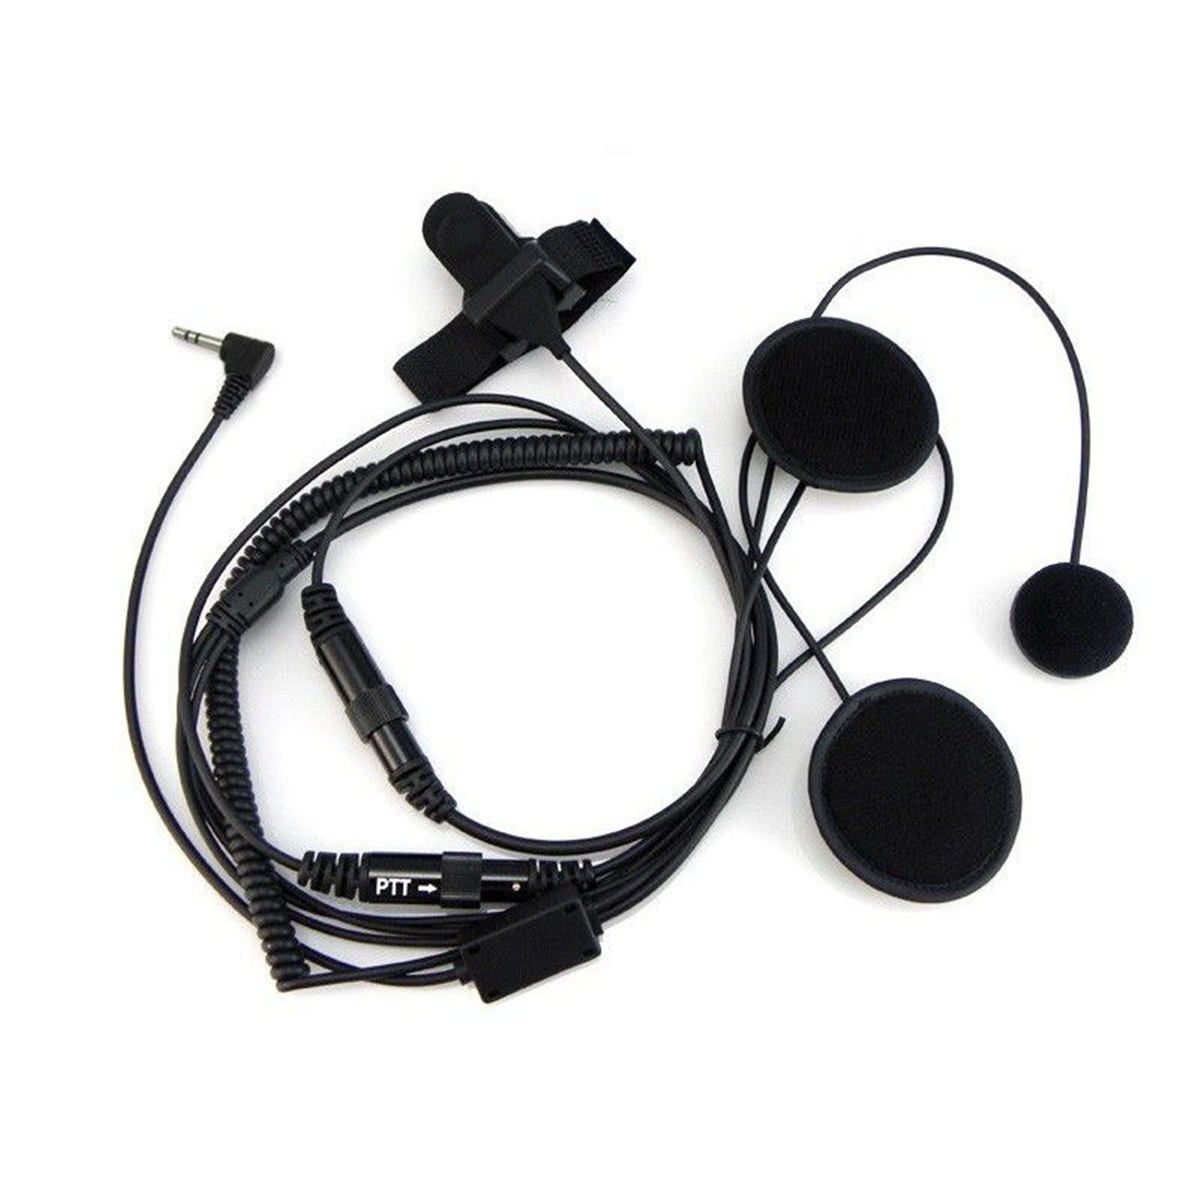 1 Pin Full Face Close Motorcycle Helmet Headset For Motorola Walkie Talkie Radio